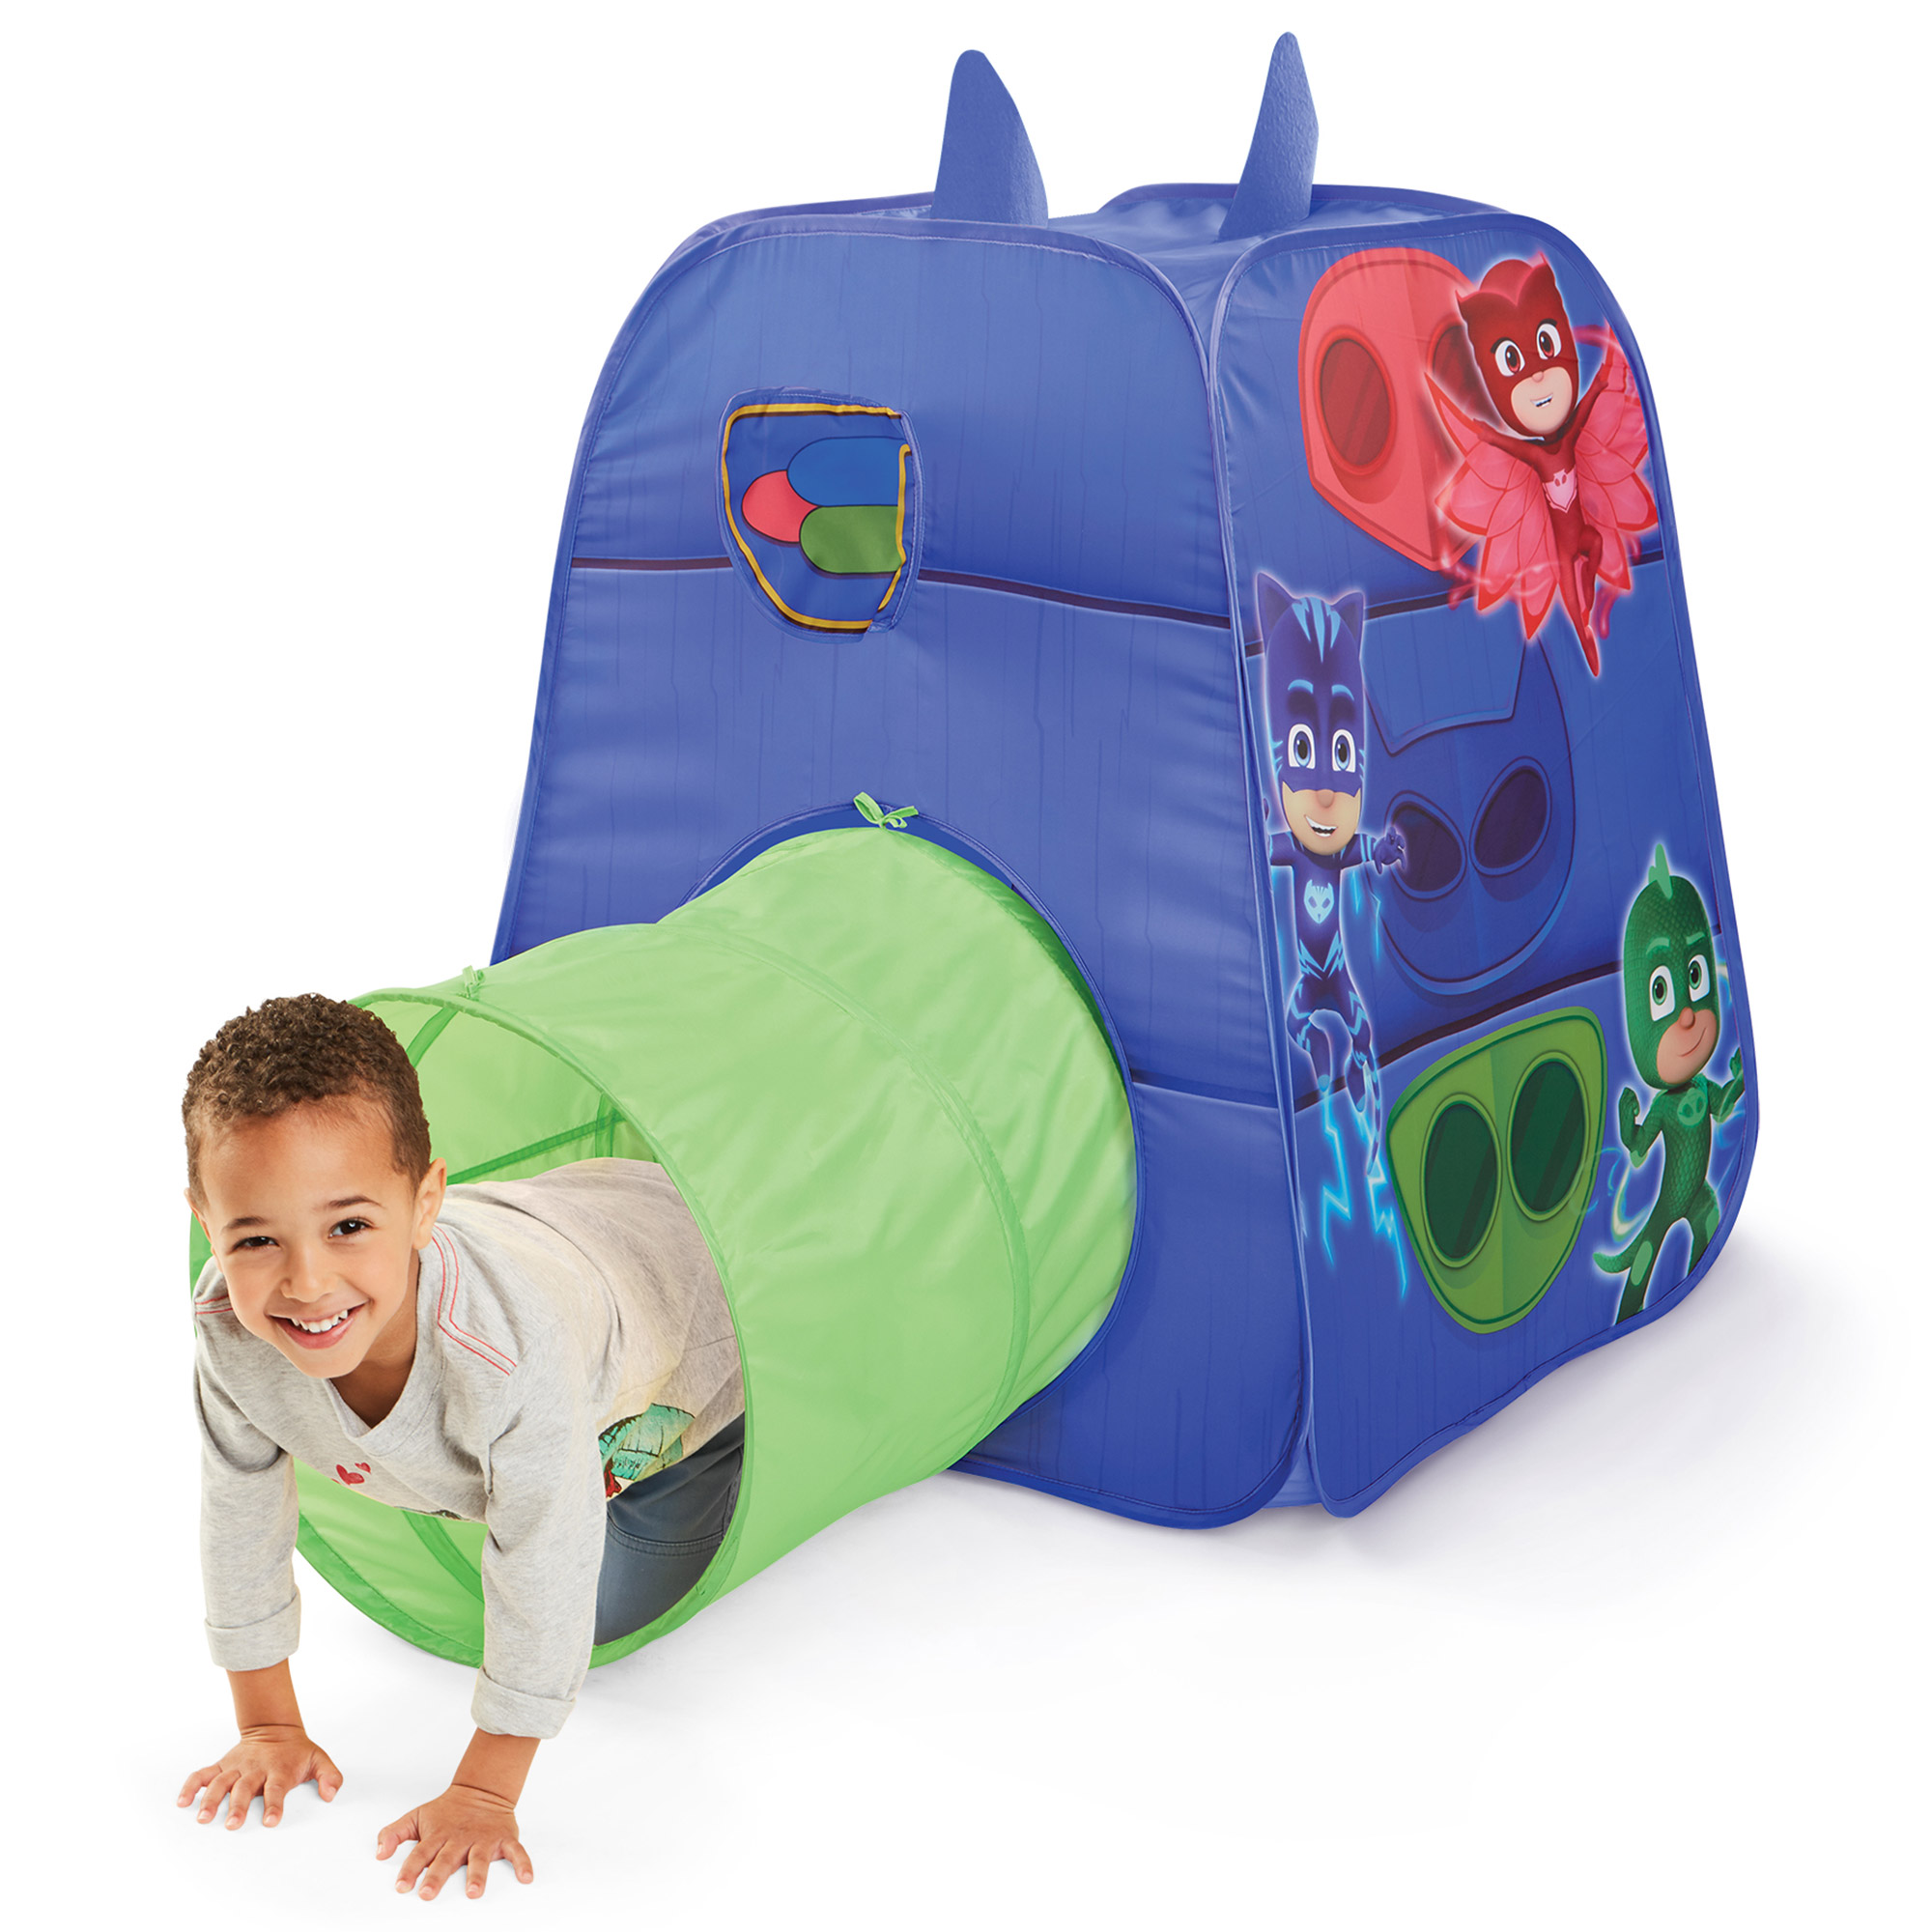 PJ Masks Character Tent + Tunnel